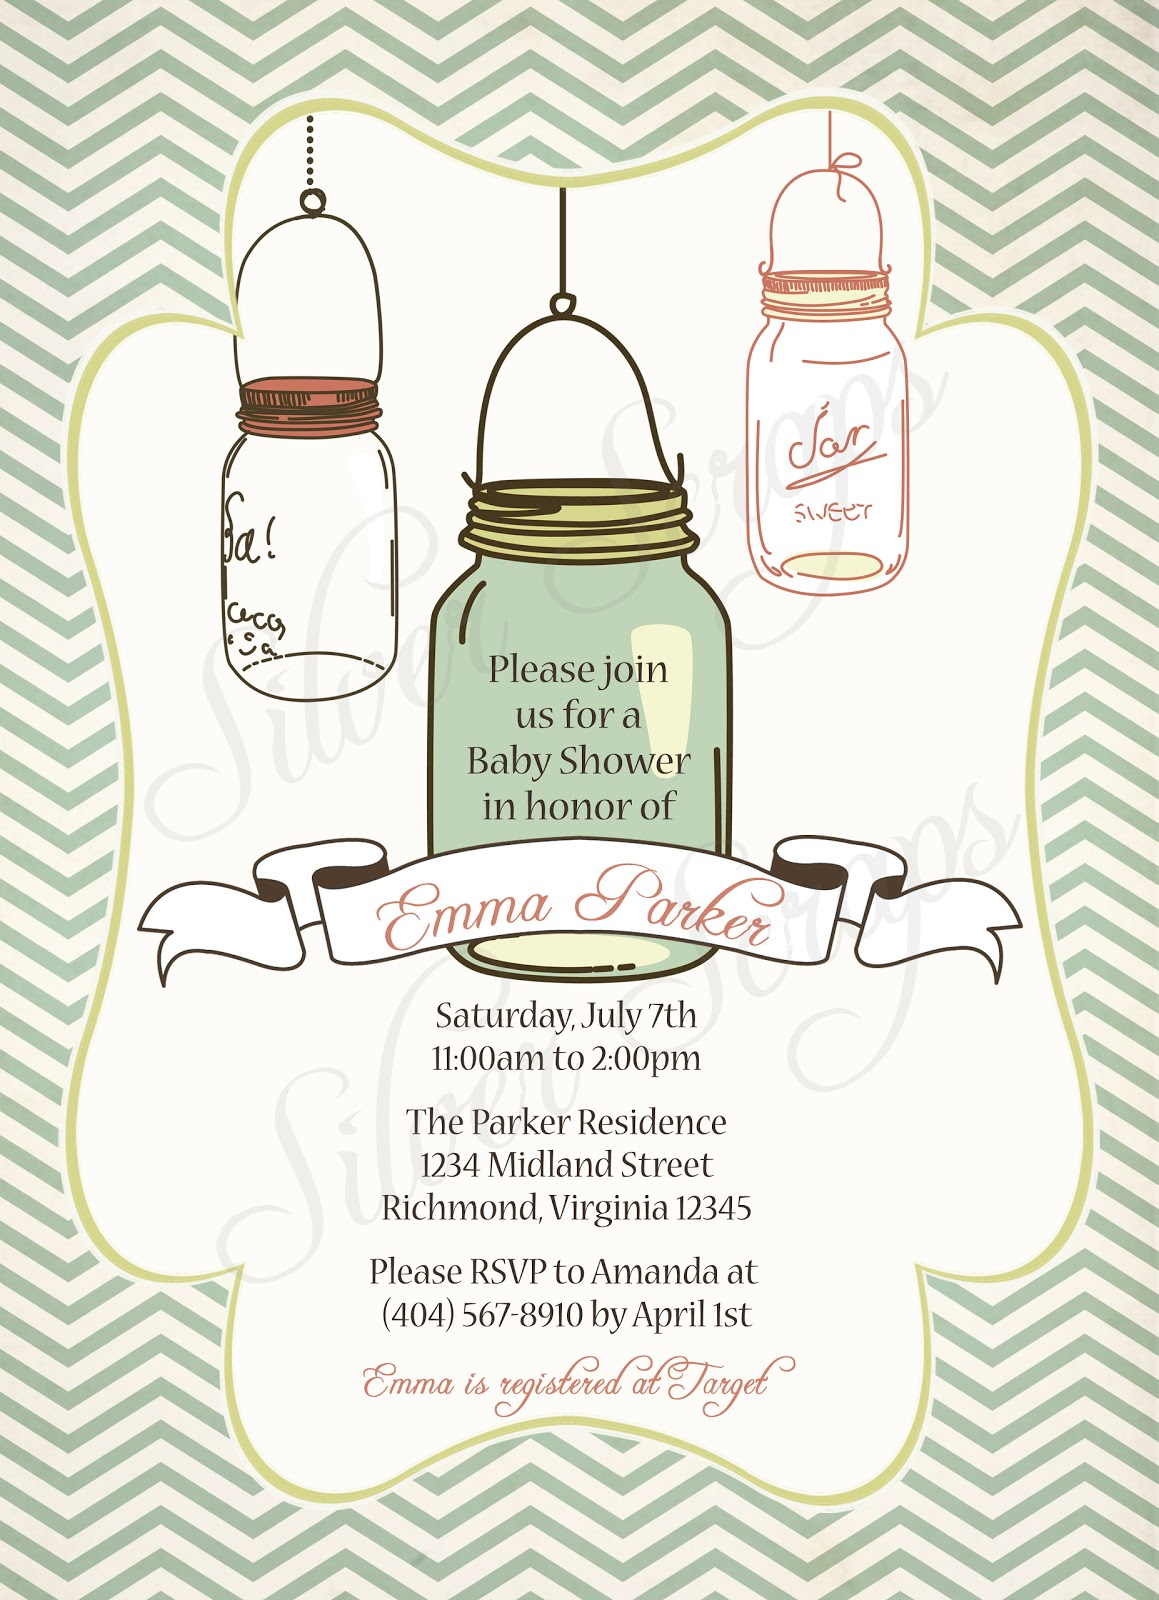 Finding Beauty In Life Vintage Mason Jar Invitations For